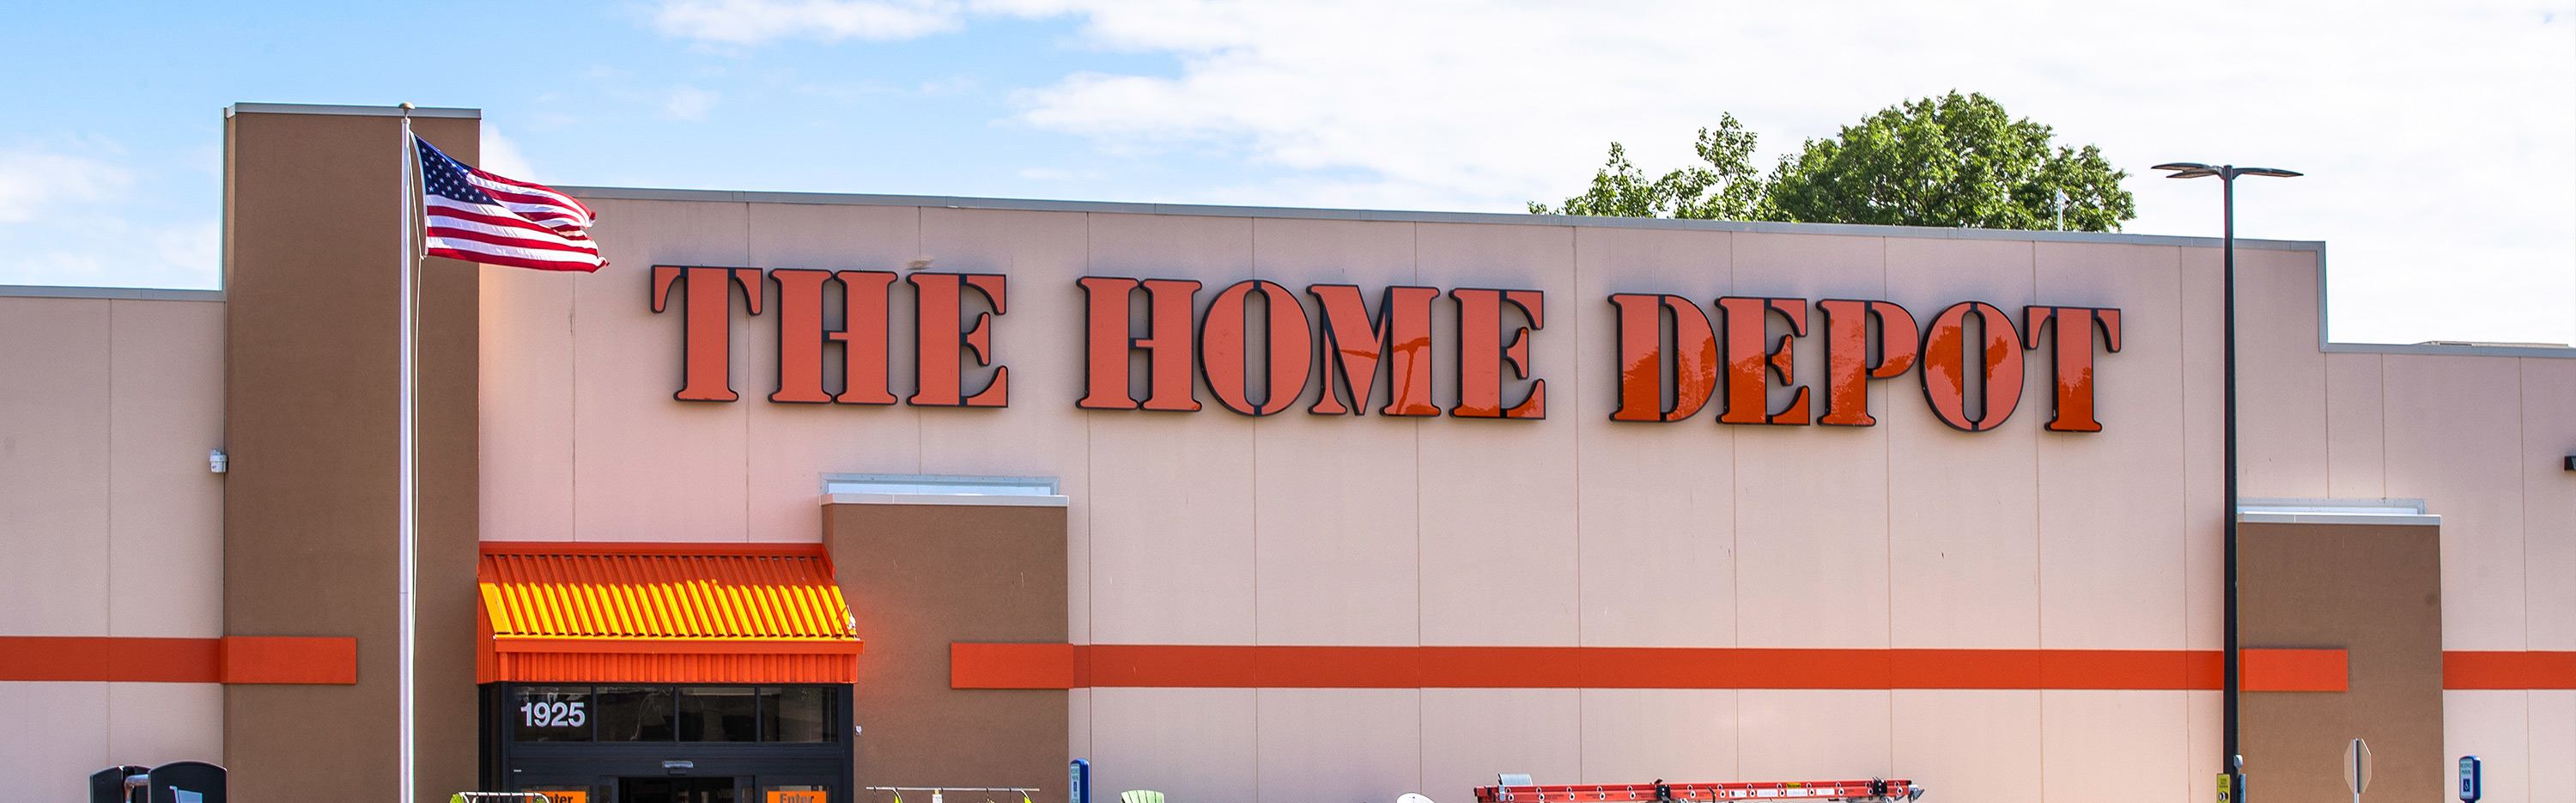 The Home Depot Temporarily Adjusts Store Hours And Extends Paid Time Off In Response To Covid 19 Home Depot Companynewshq